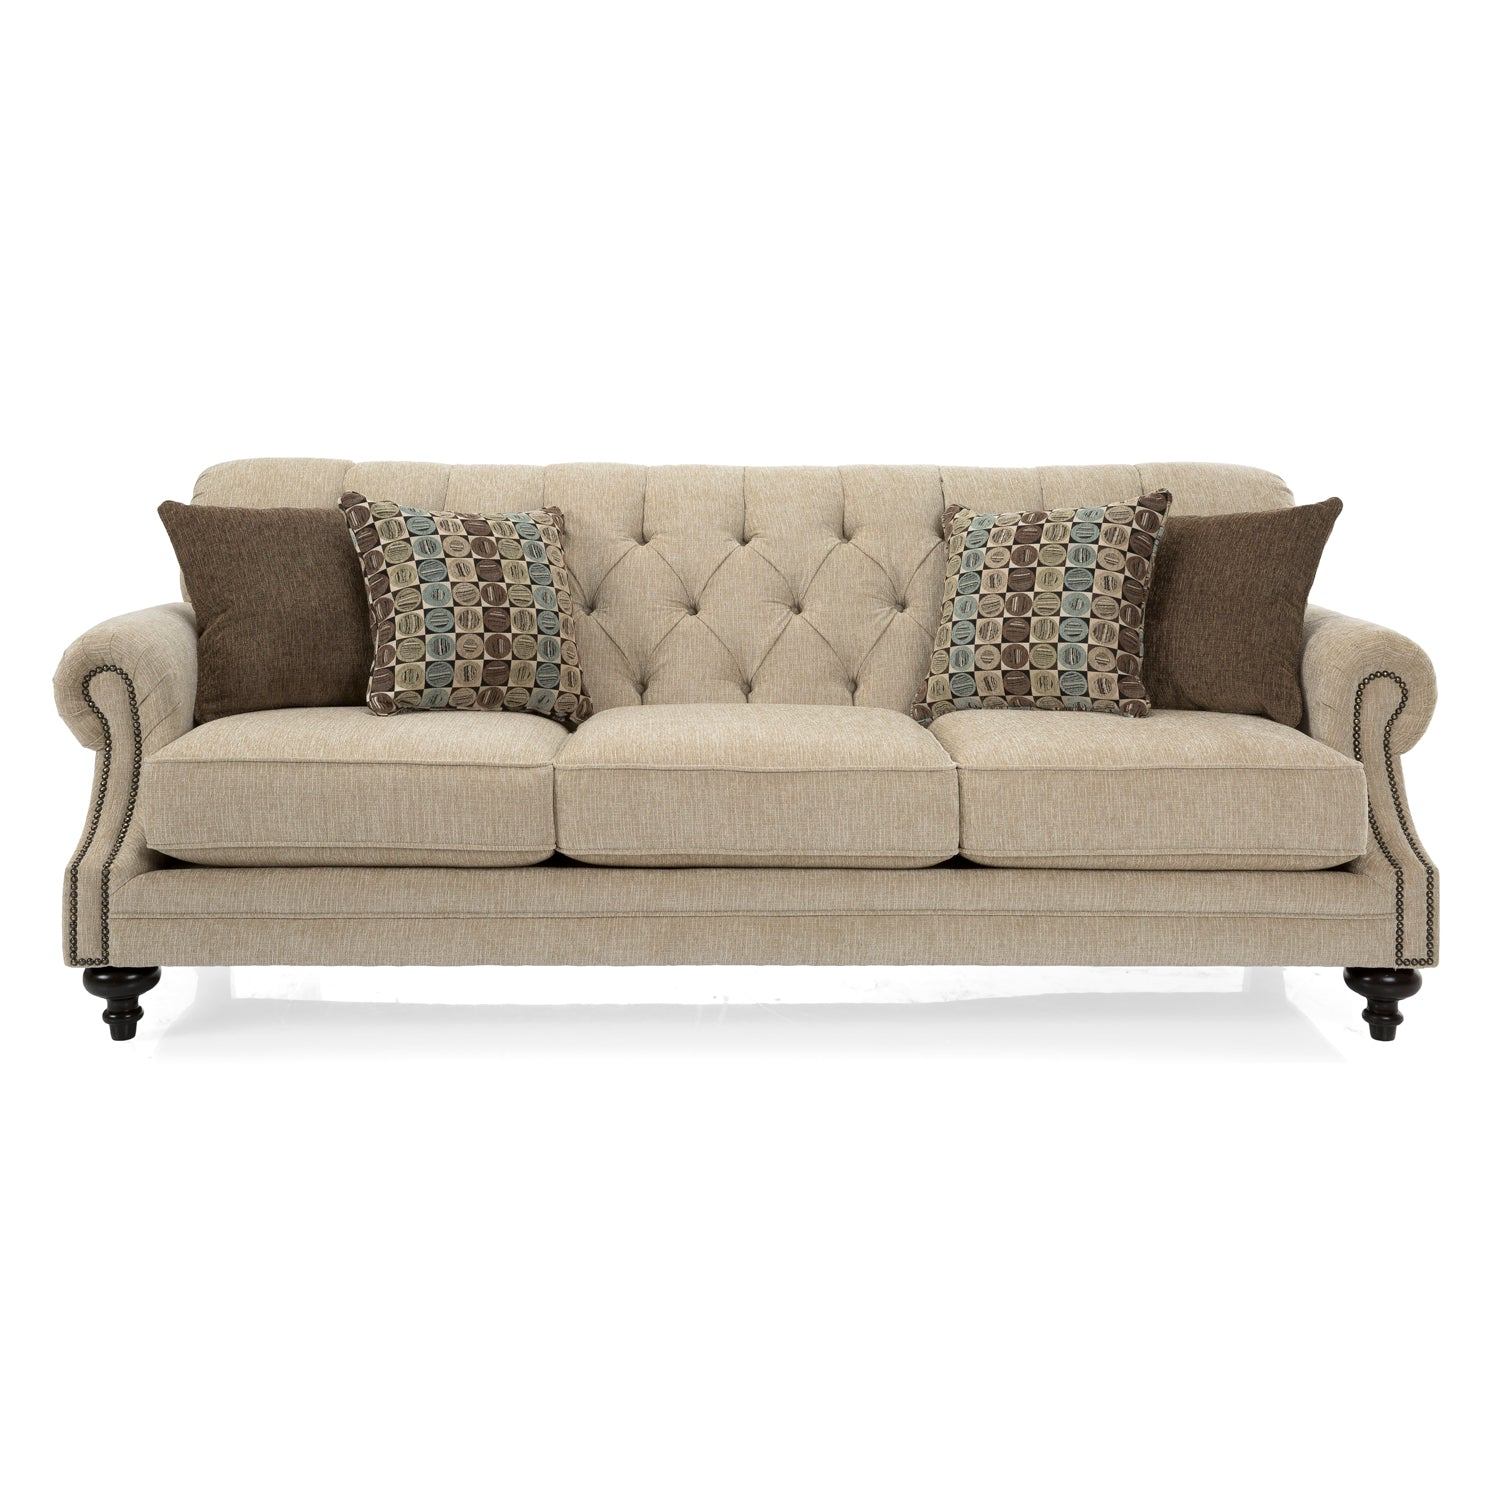 Studded Decor-Rest Sofa with Turned Legs